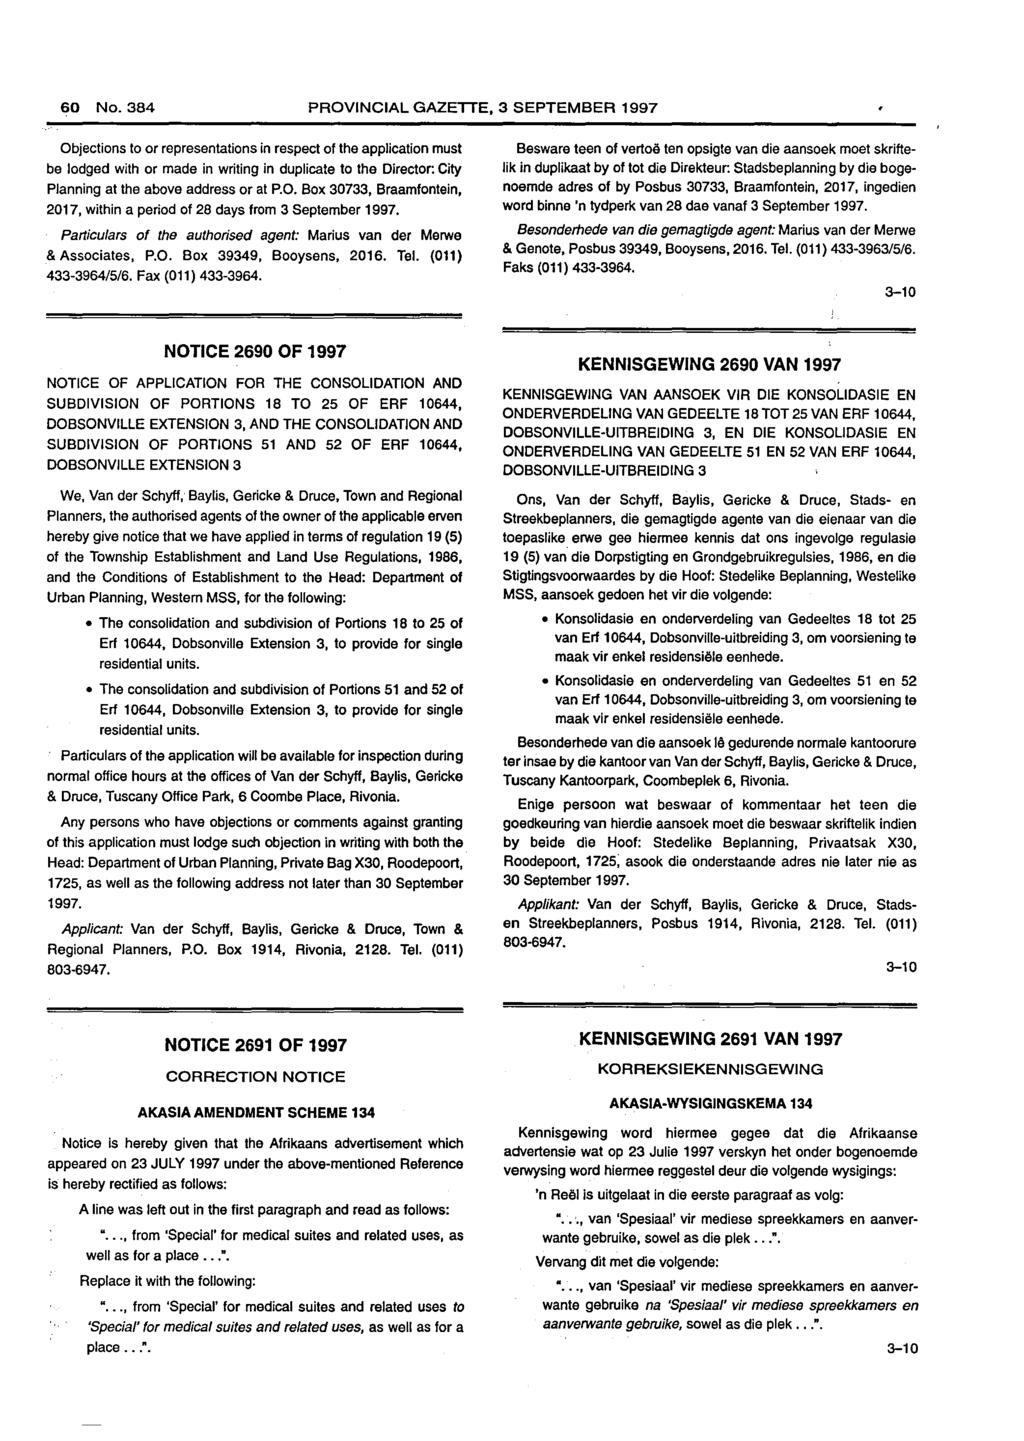 60 No. PROVINCIAL GAZETTE, 3 SEPTEMBER 1997 be lodged with or made in writing in duplicate to the Director: City Planning at the above address or at P.O. Box 30733, Braamfontein, 2017, within a period of 28 days from Particulars of the authorised agent: Marius van der Merwe & Associates, P.